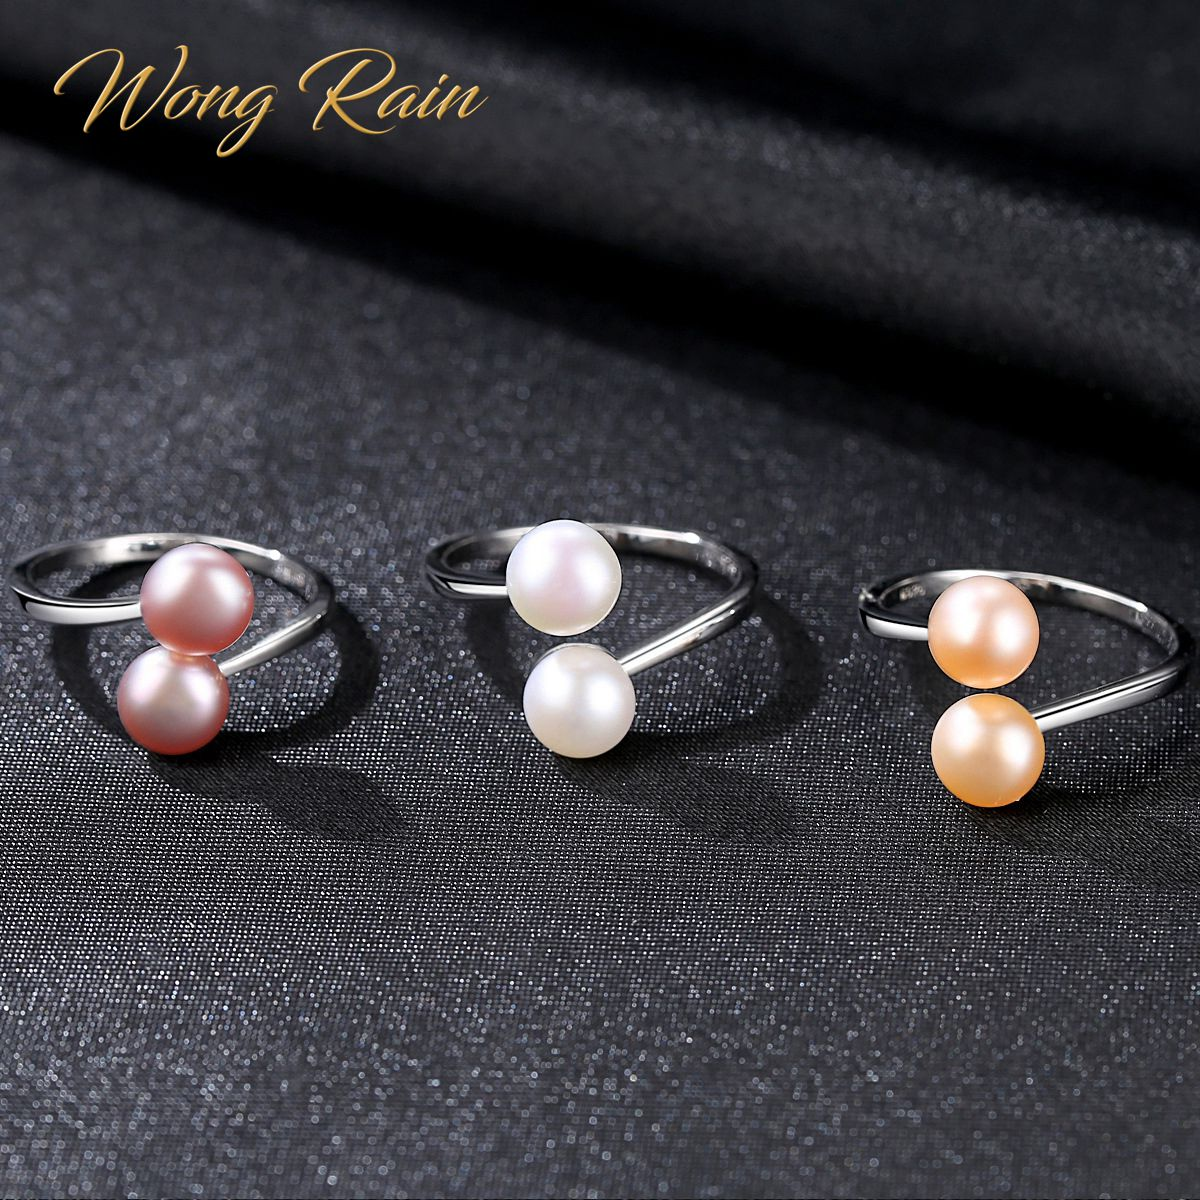 Wong Rain 100% 925 Sterling Silver Natural Freshwater Pearls Gemstone Wedding Engagement Adjustable Opening Ring Fine Jewelry